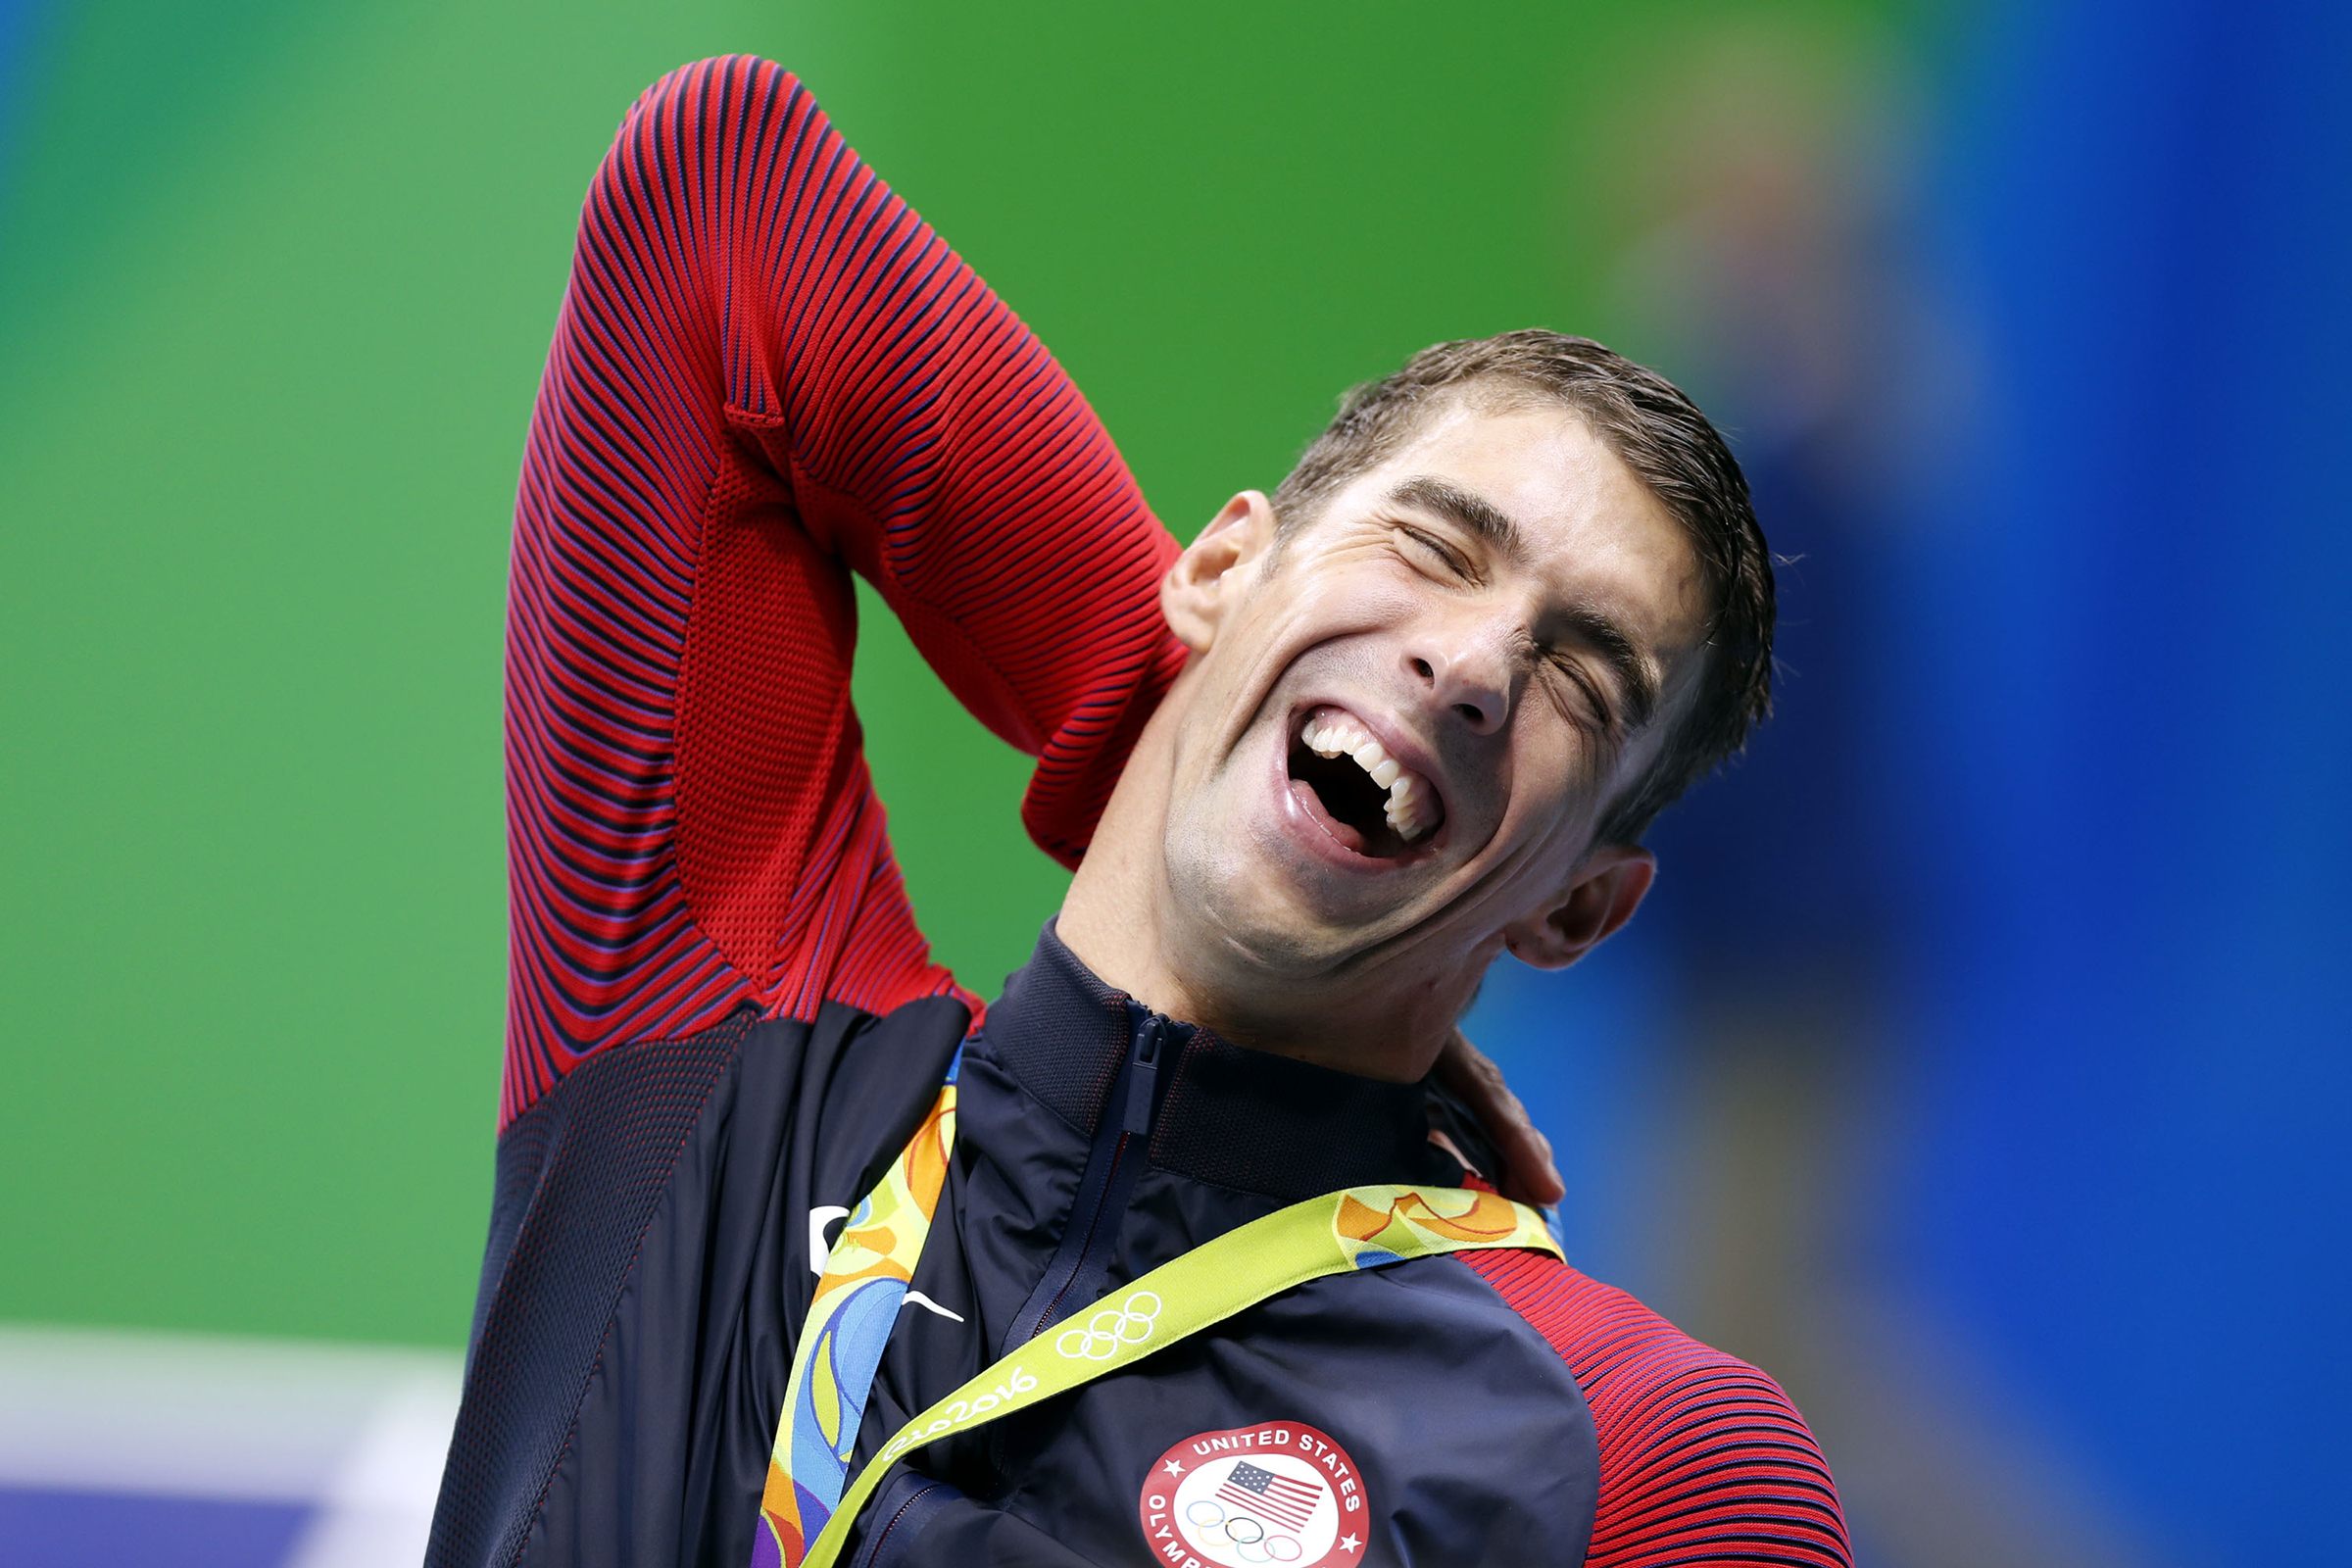 Michael Phelps of the United States of America reacts during the awarding ceremony for men?s 4x200m freestyle relay final of swimming at the 2016 Rio Olympic Games in Rio de Janeiro, Brazil, on Aug. 9, 2016. The U.S. won the gold medal with 7 minute 0.66 seconds. / CHINA OUT